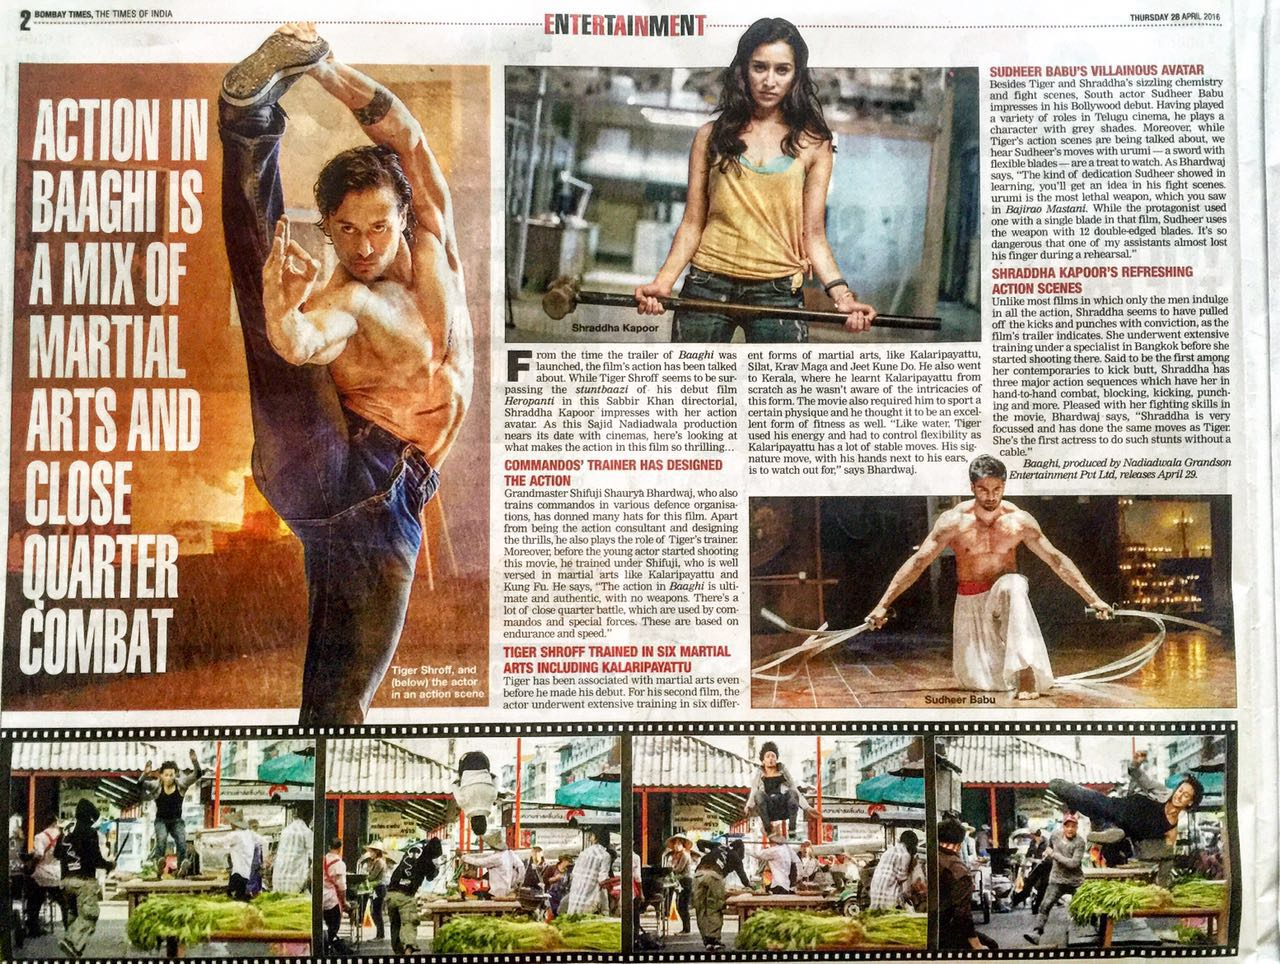 Action in Baaghi is a mix of martial arts and close quarter combat